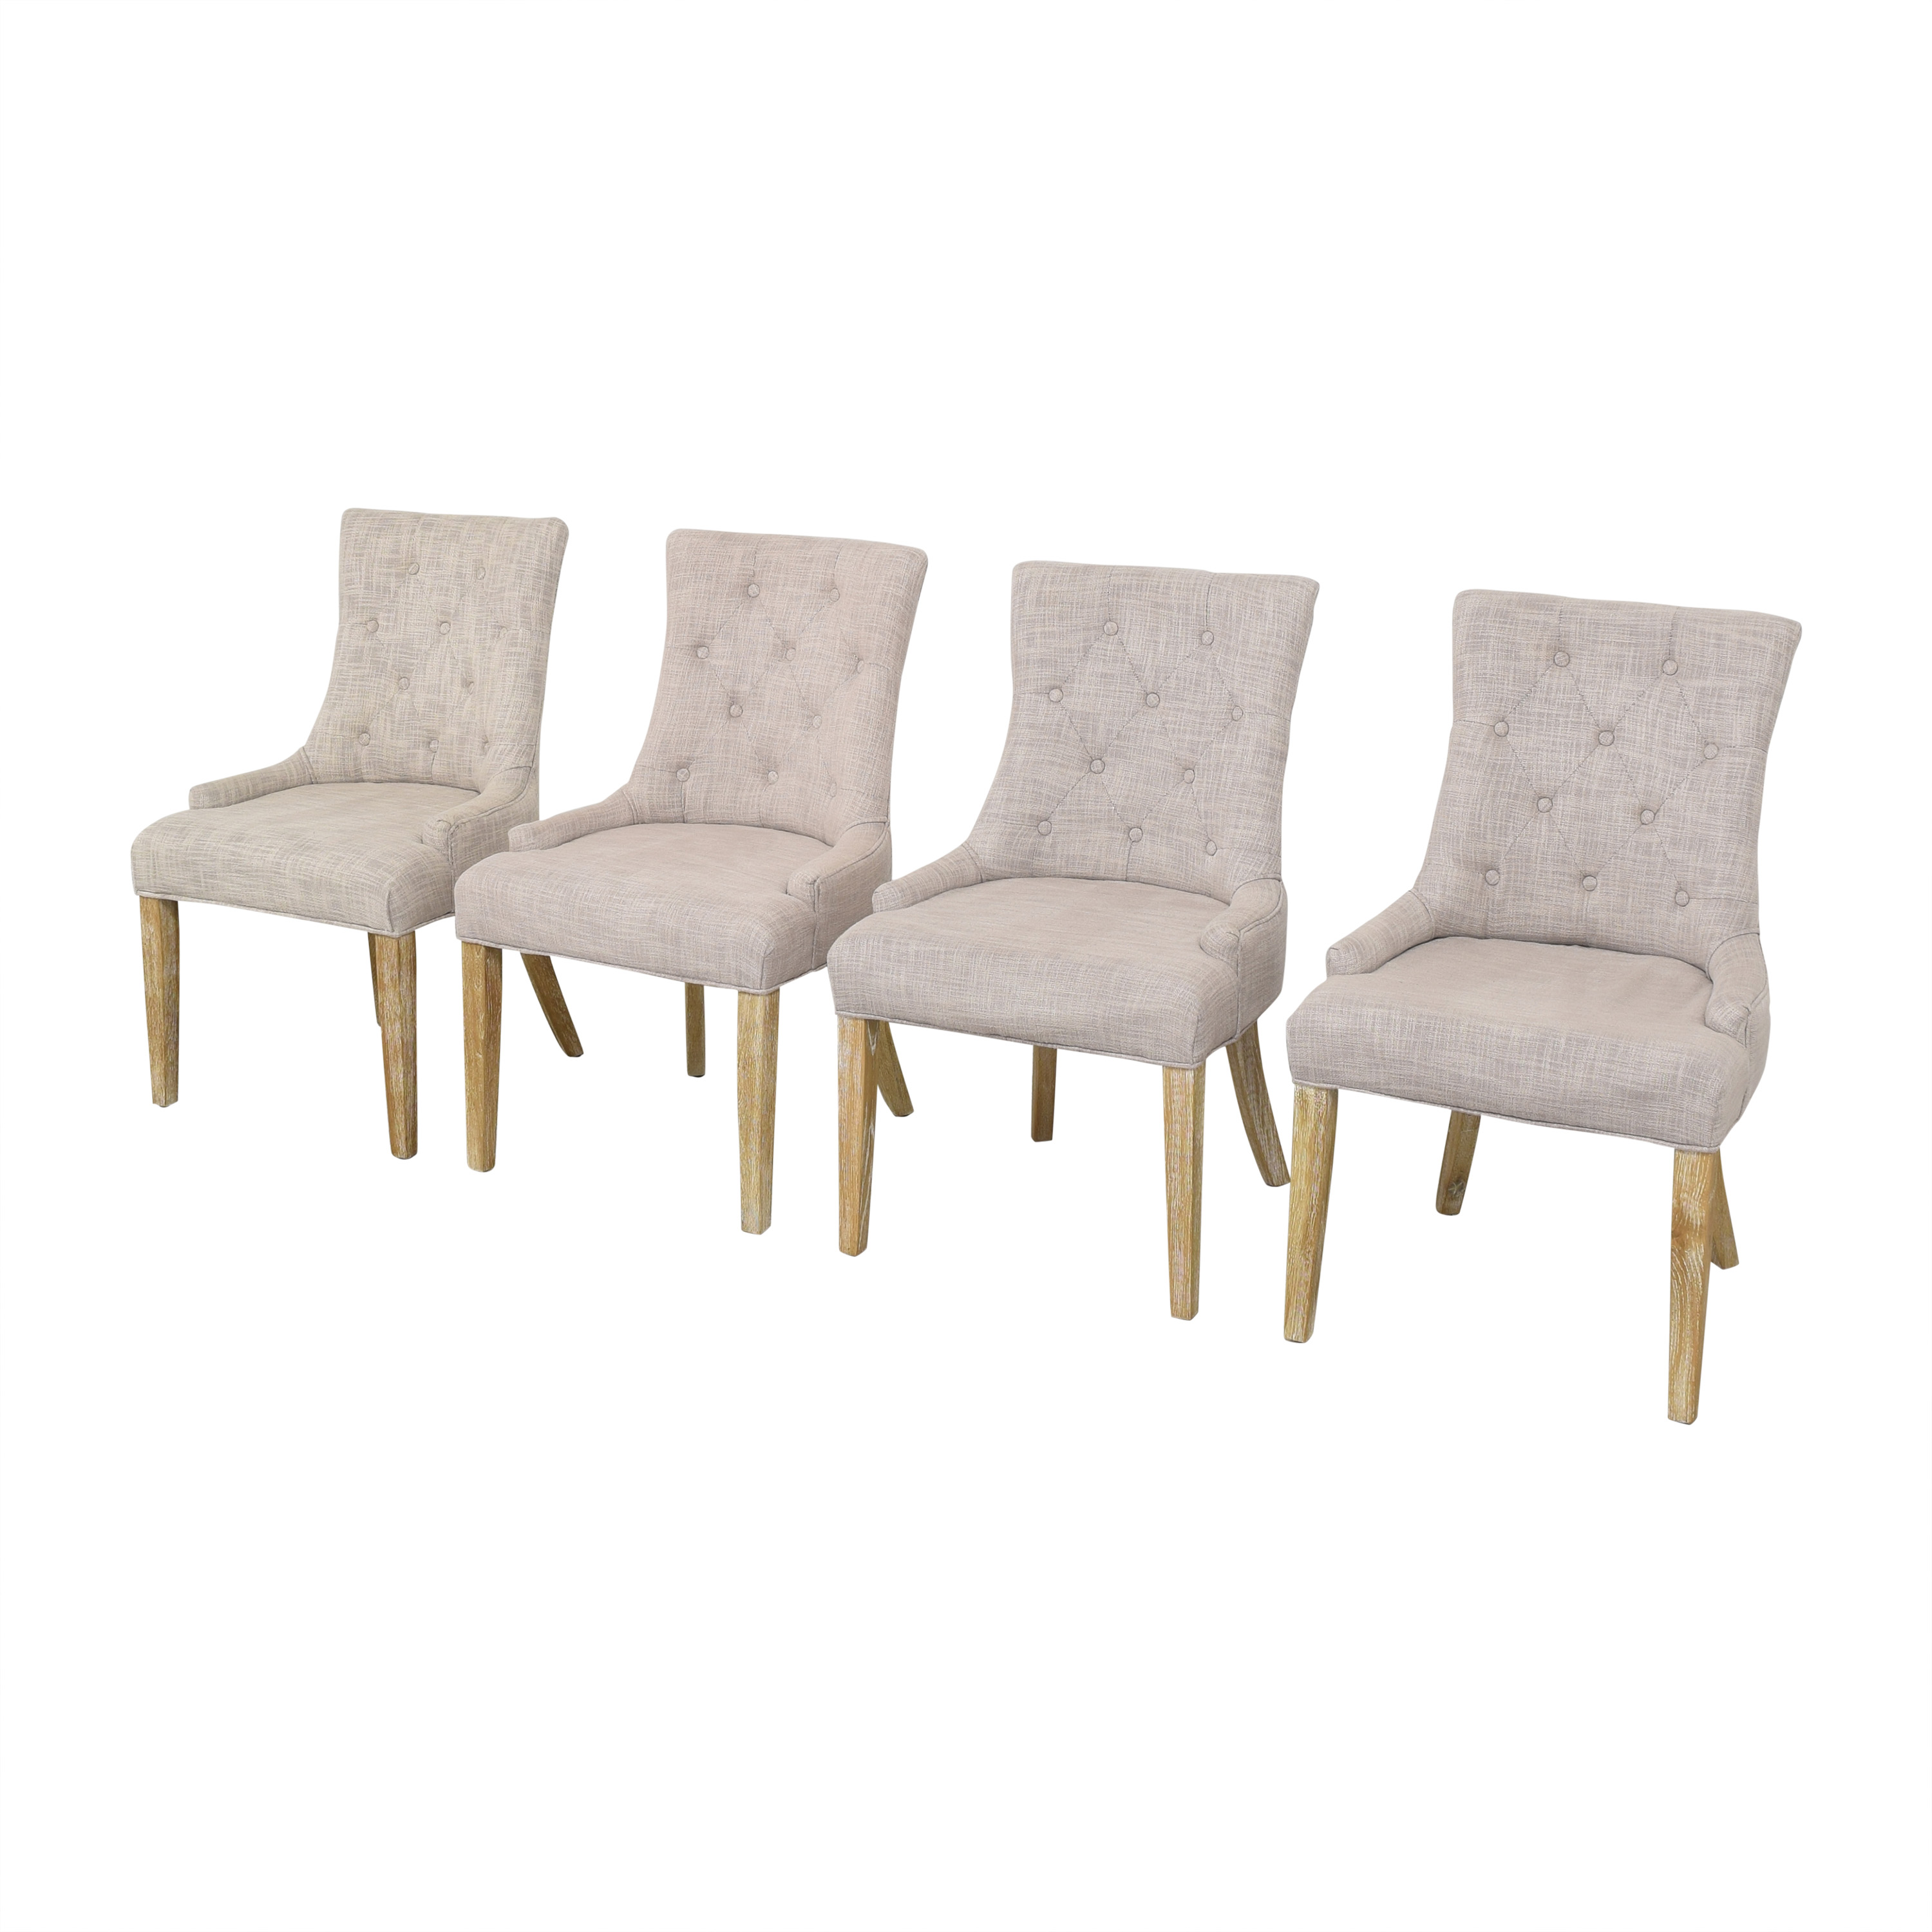 shop Safavieh Alexia Dining Chairs Safavieh Dining Chairs